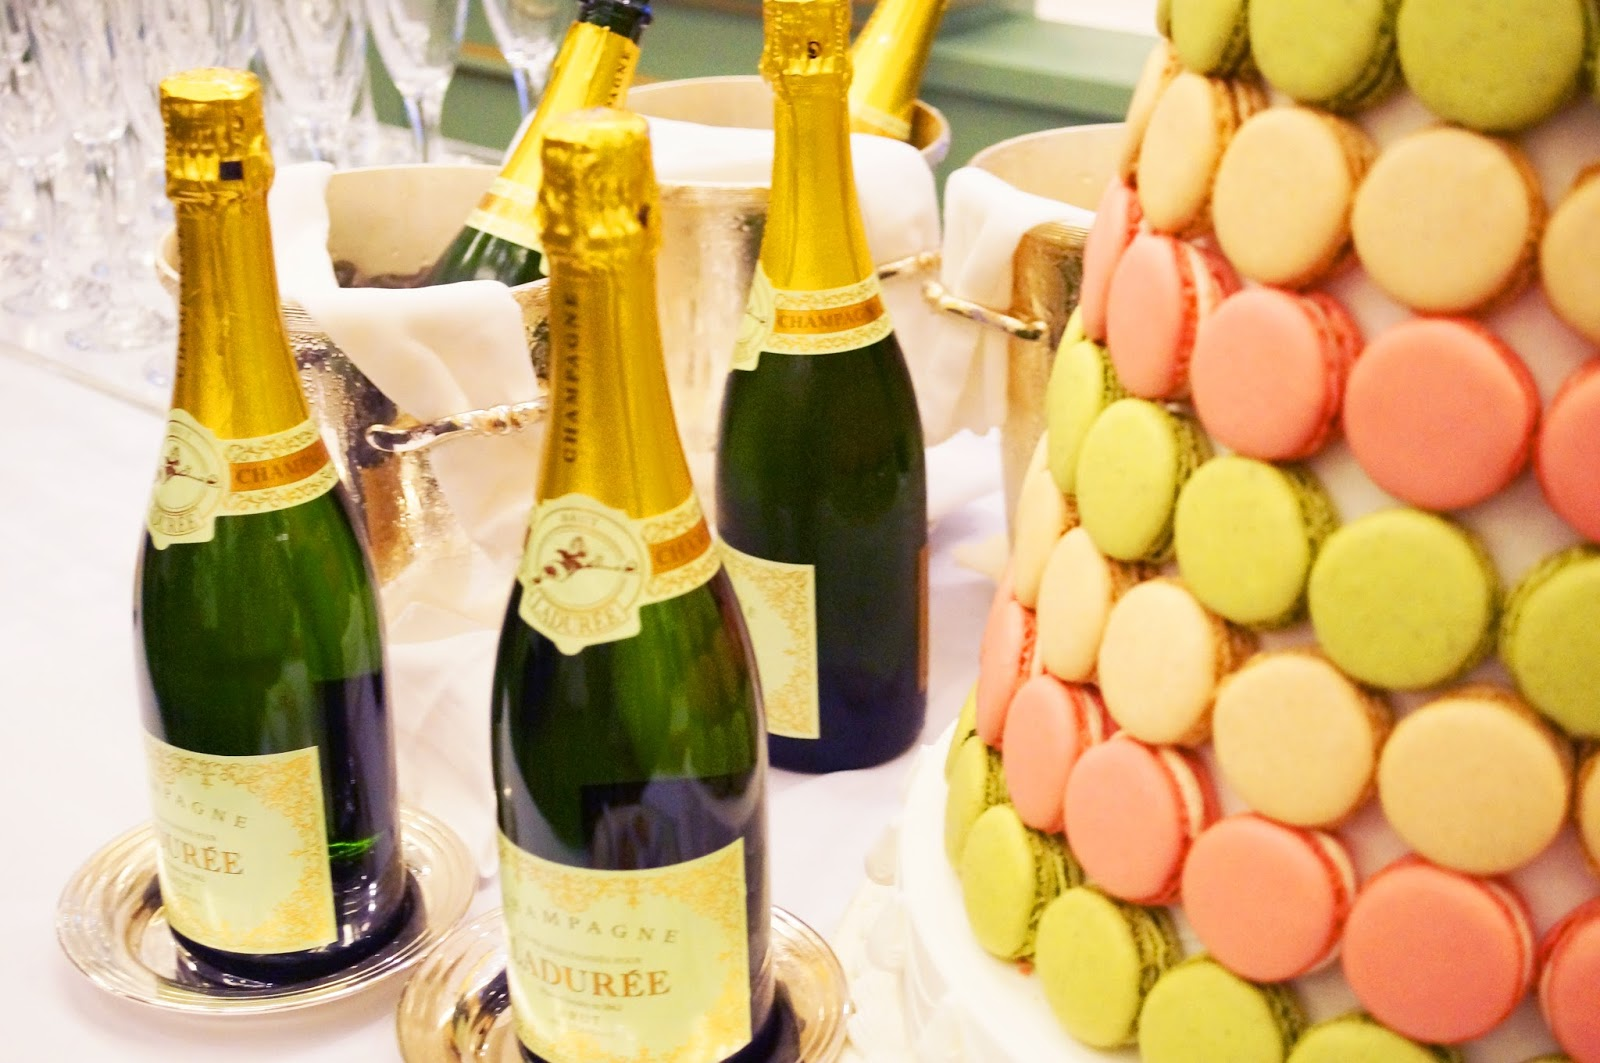 What could be better than champagne and macaroons! Tres chic!